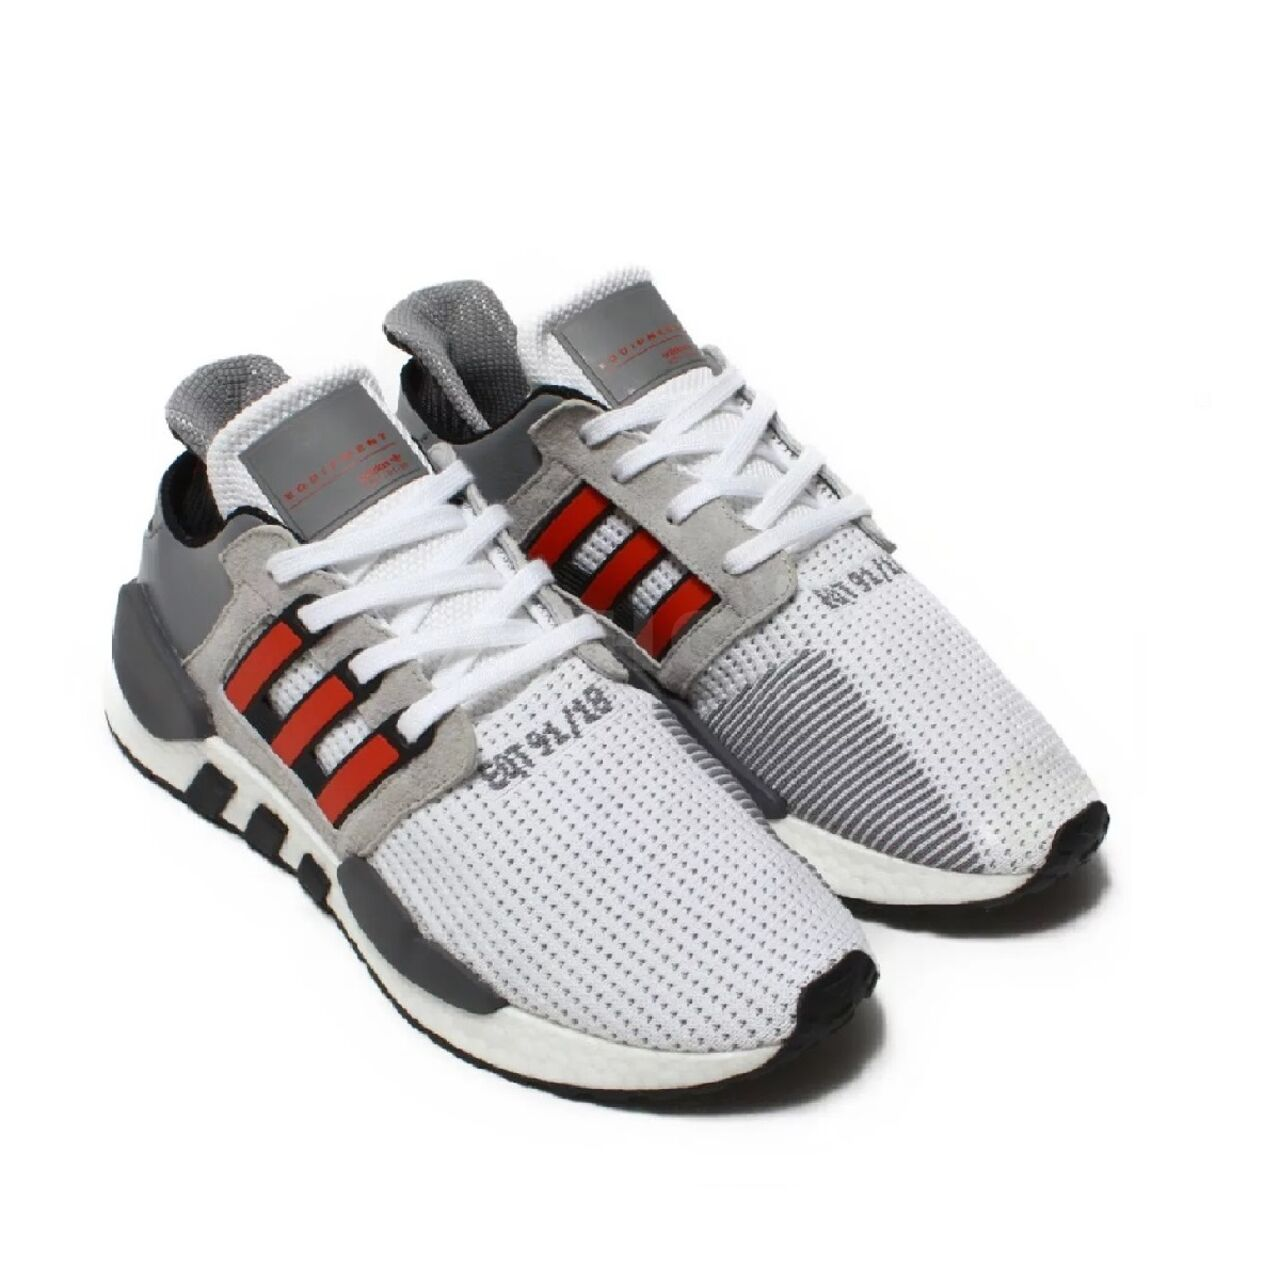 Adidas EQT Support 91/18 Grey Red 42 р